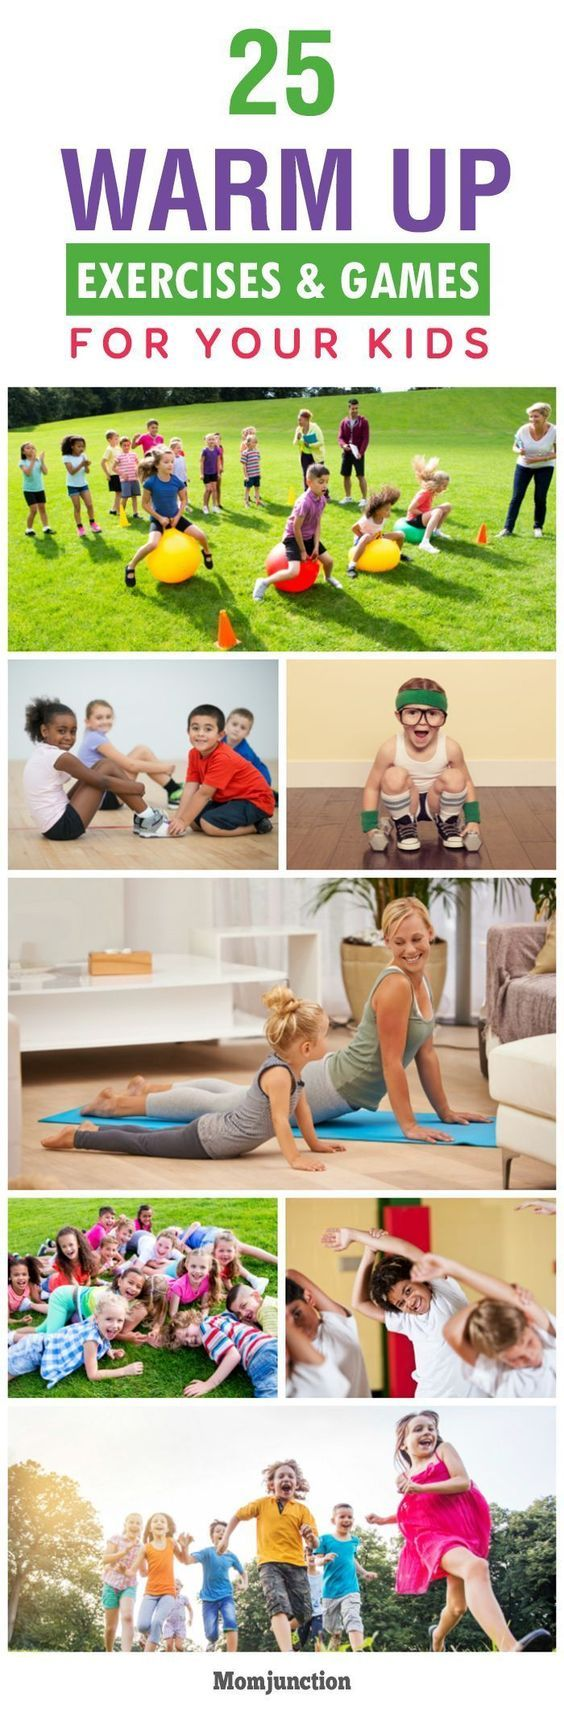 25 Fun Warm Up Exercises And Games For Kids #kidsnutrition